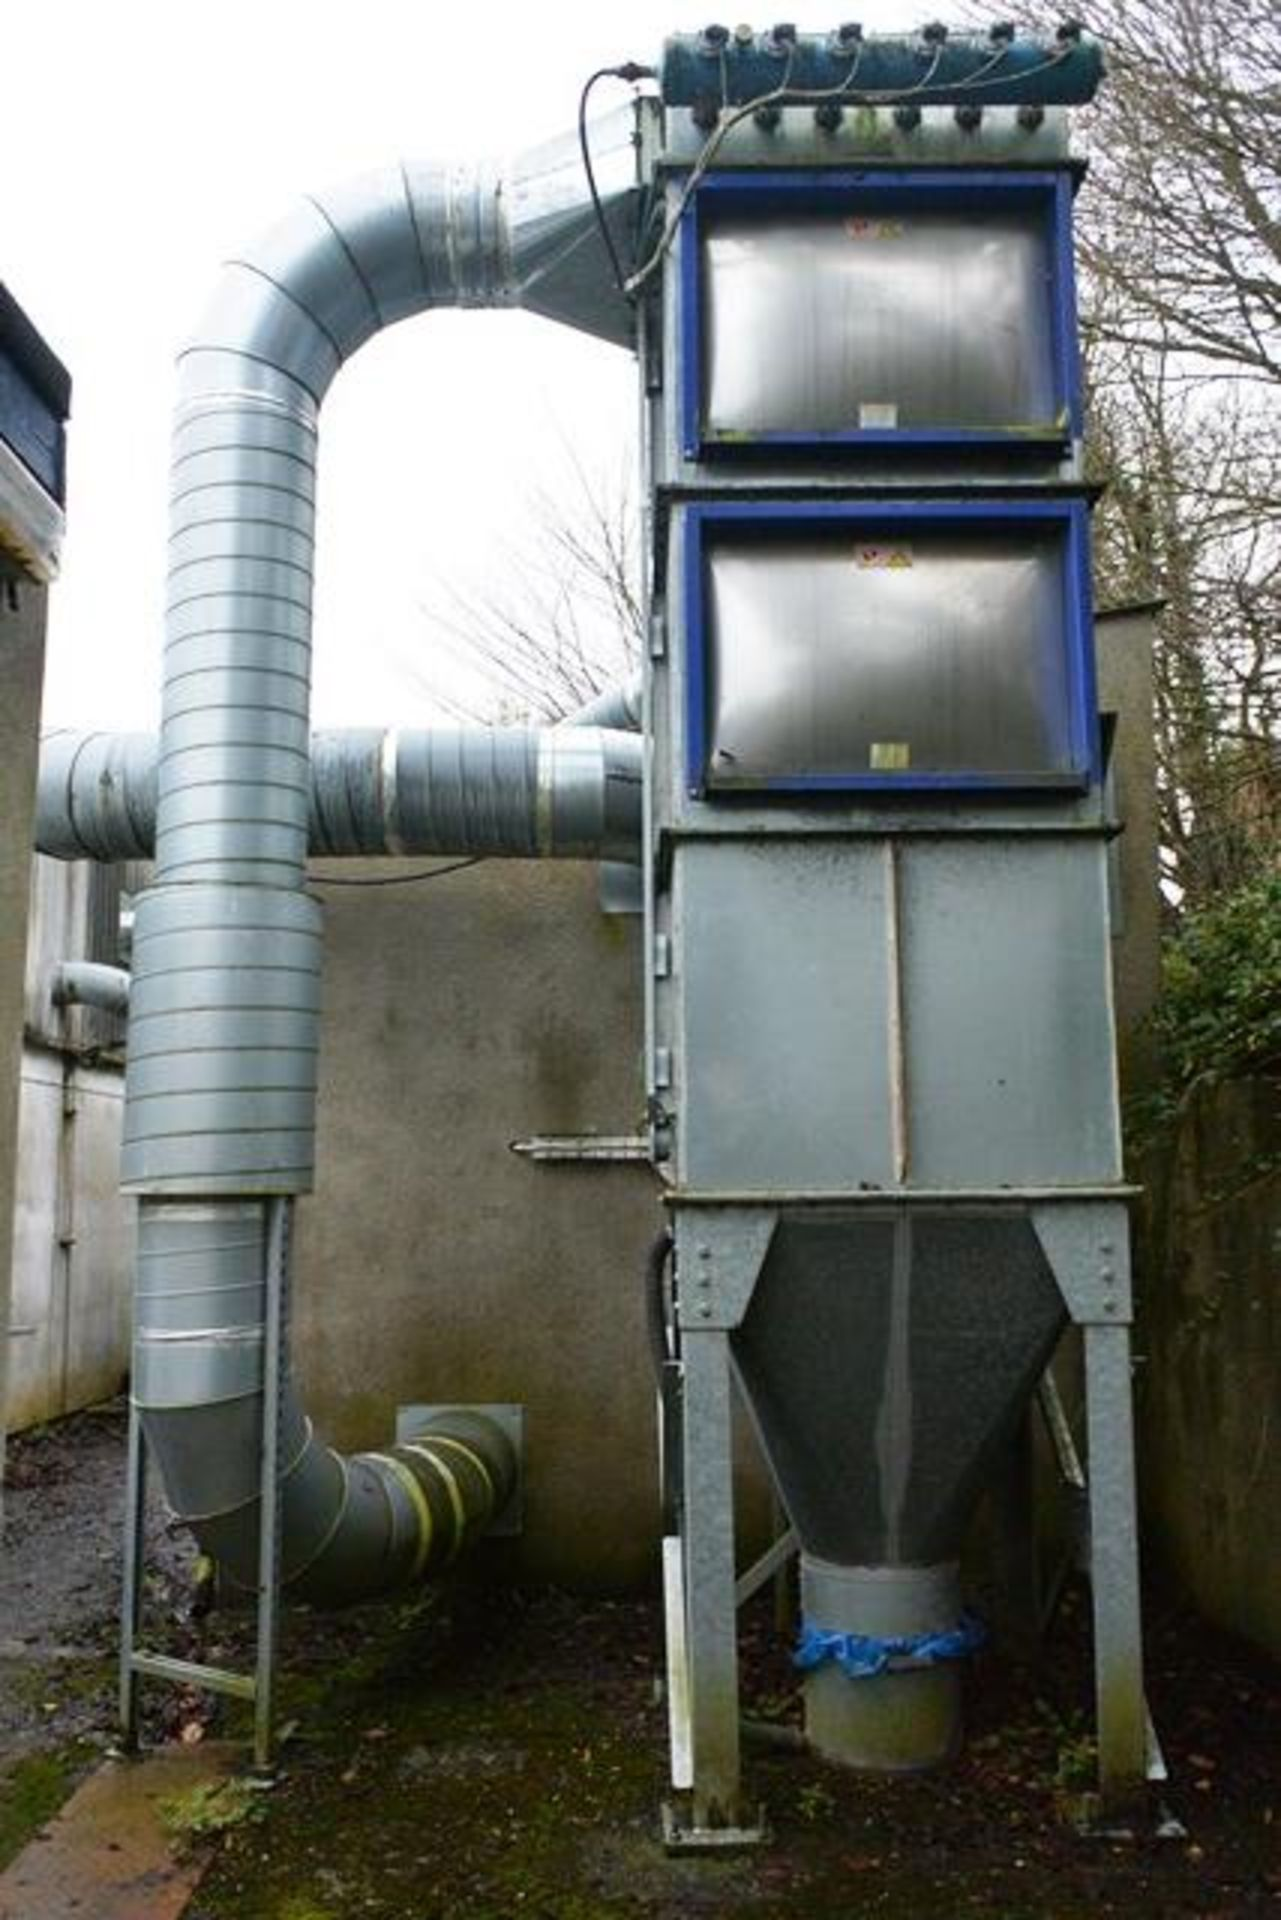 Galvanised steel 6 sock/bag extraction unit, with Cyclone fan unit, silo approx 5m x 1.2m x 1.2m (